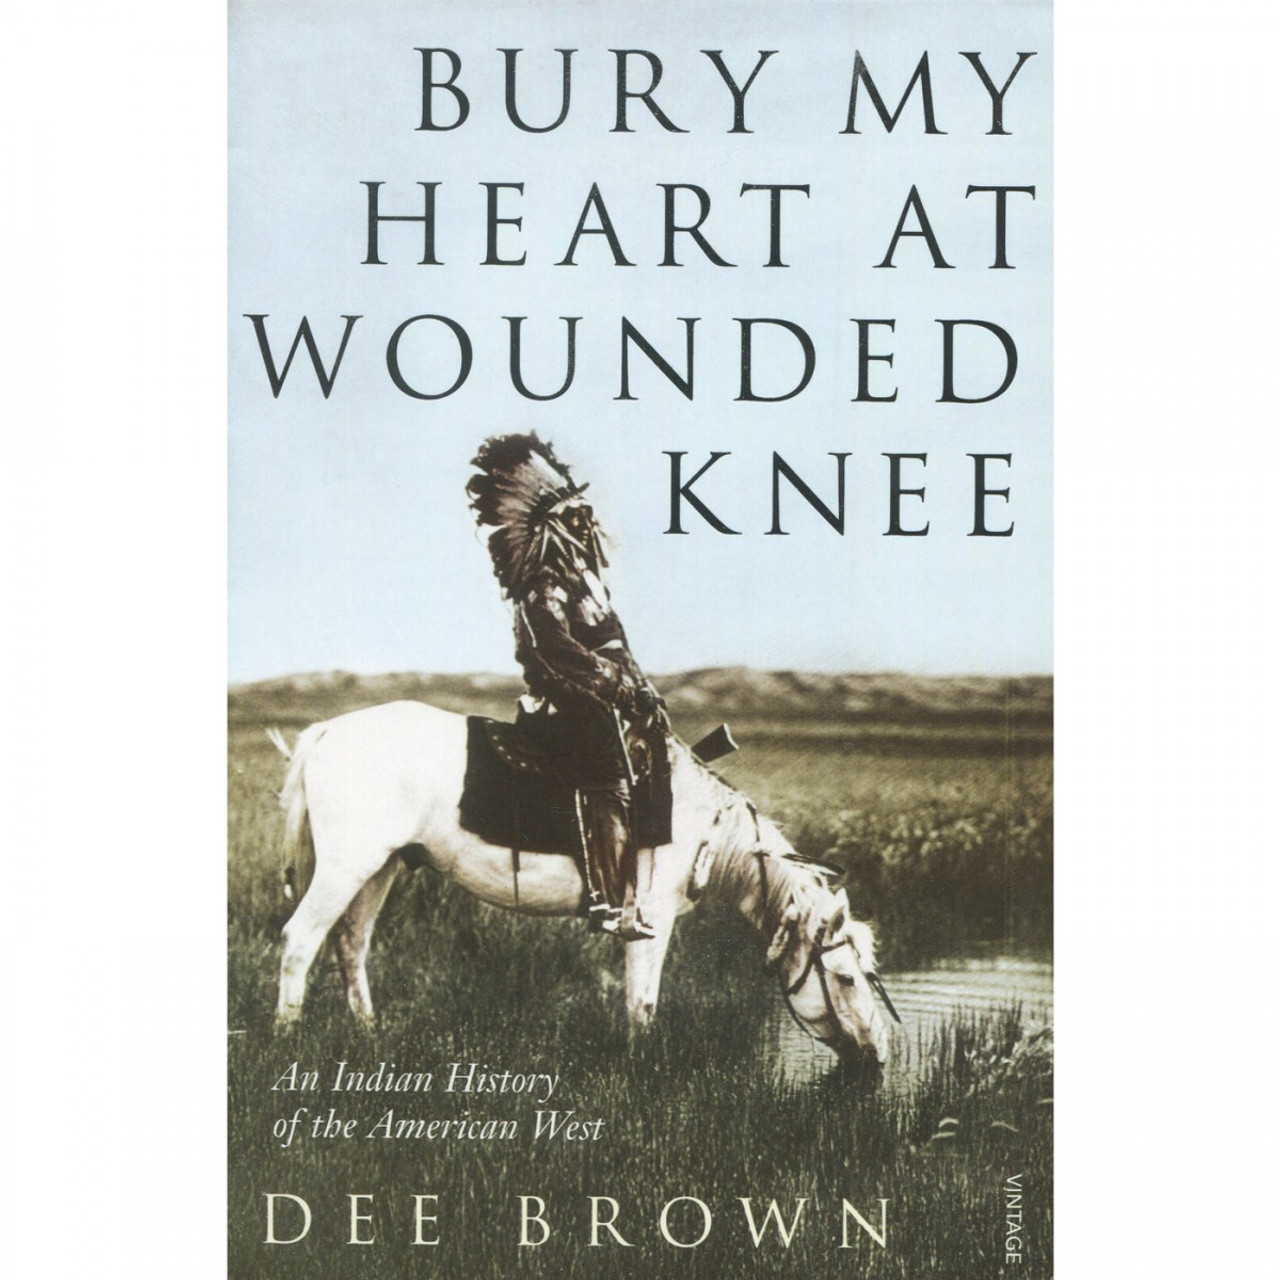 Bury My Heart at Wounded Knee by Dee Brown